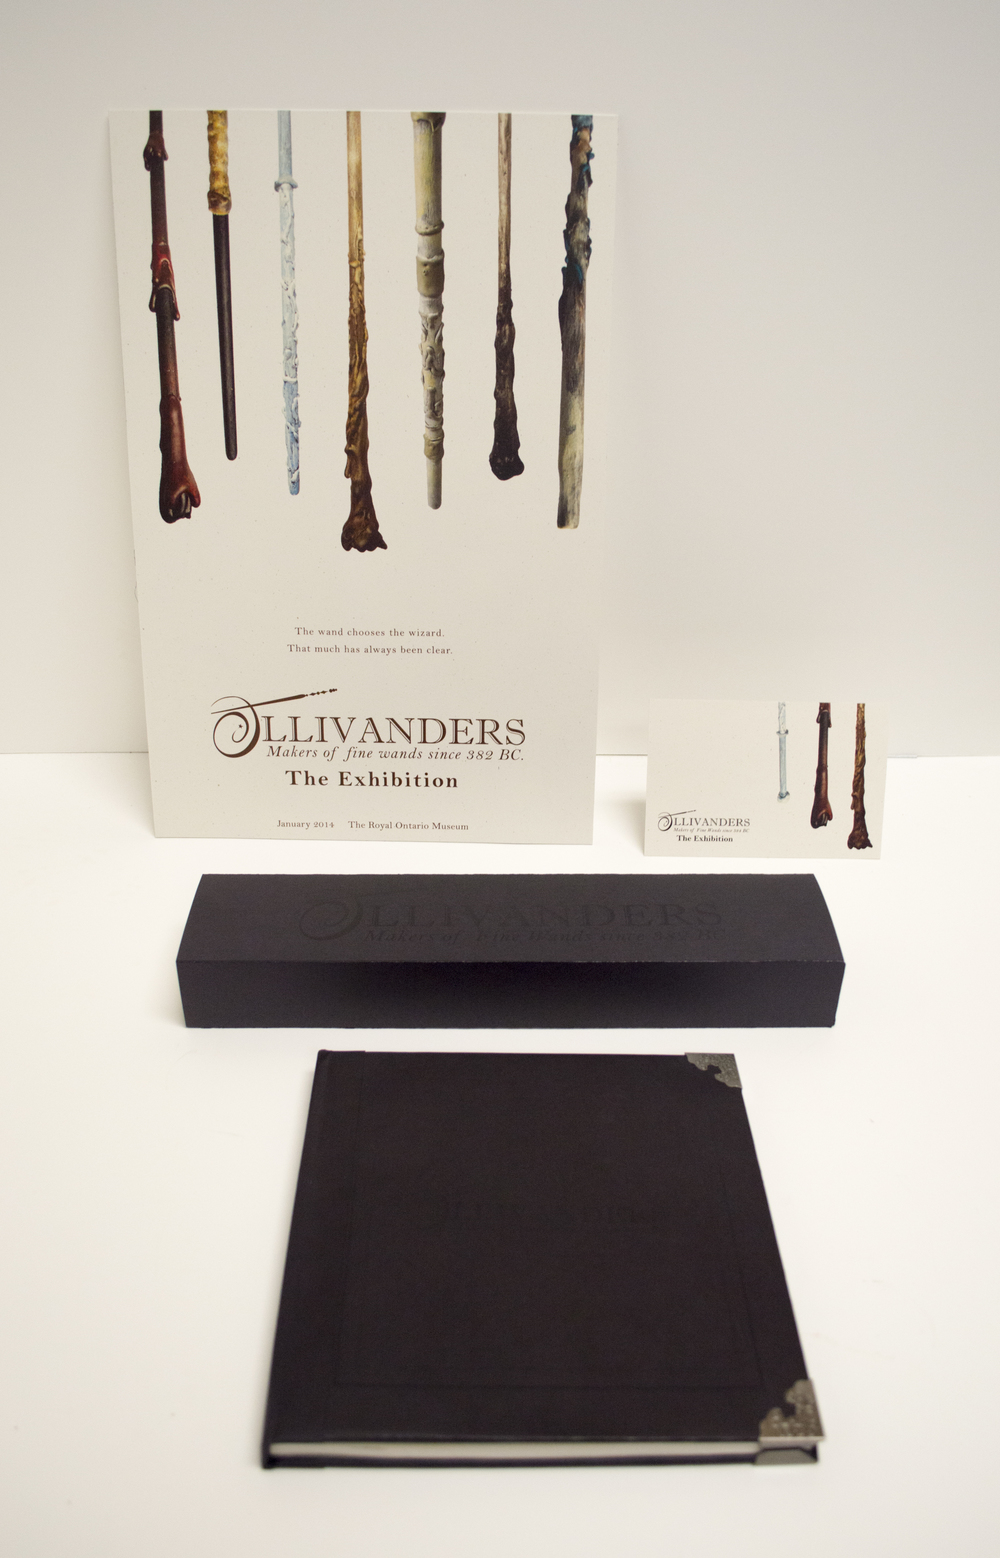 Ollivanders, The Exhibition